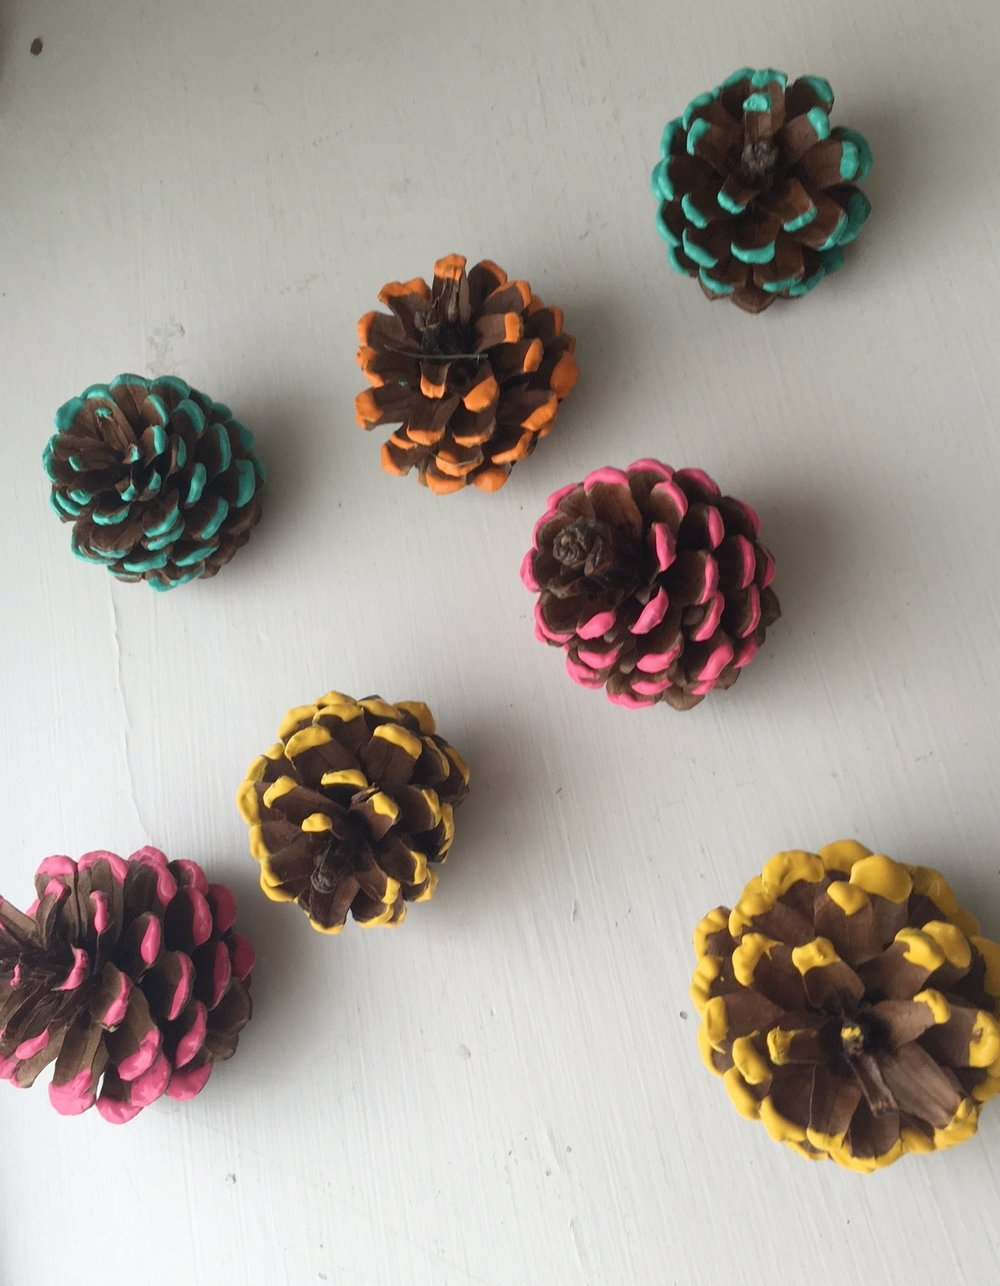 Painting-pinecones